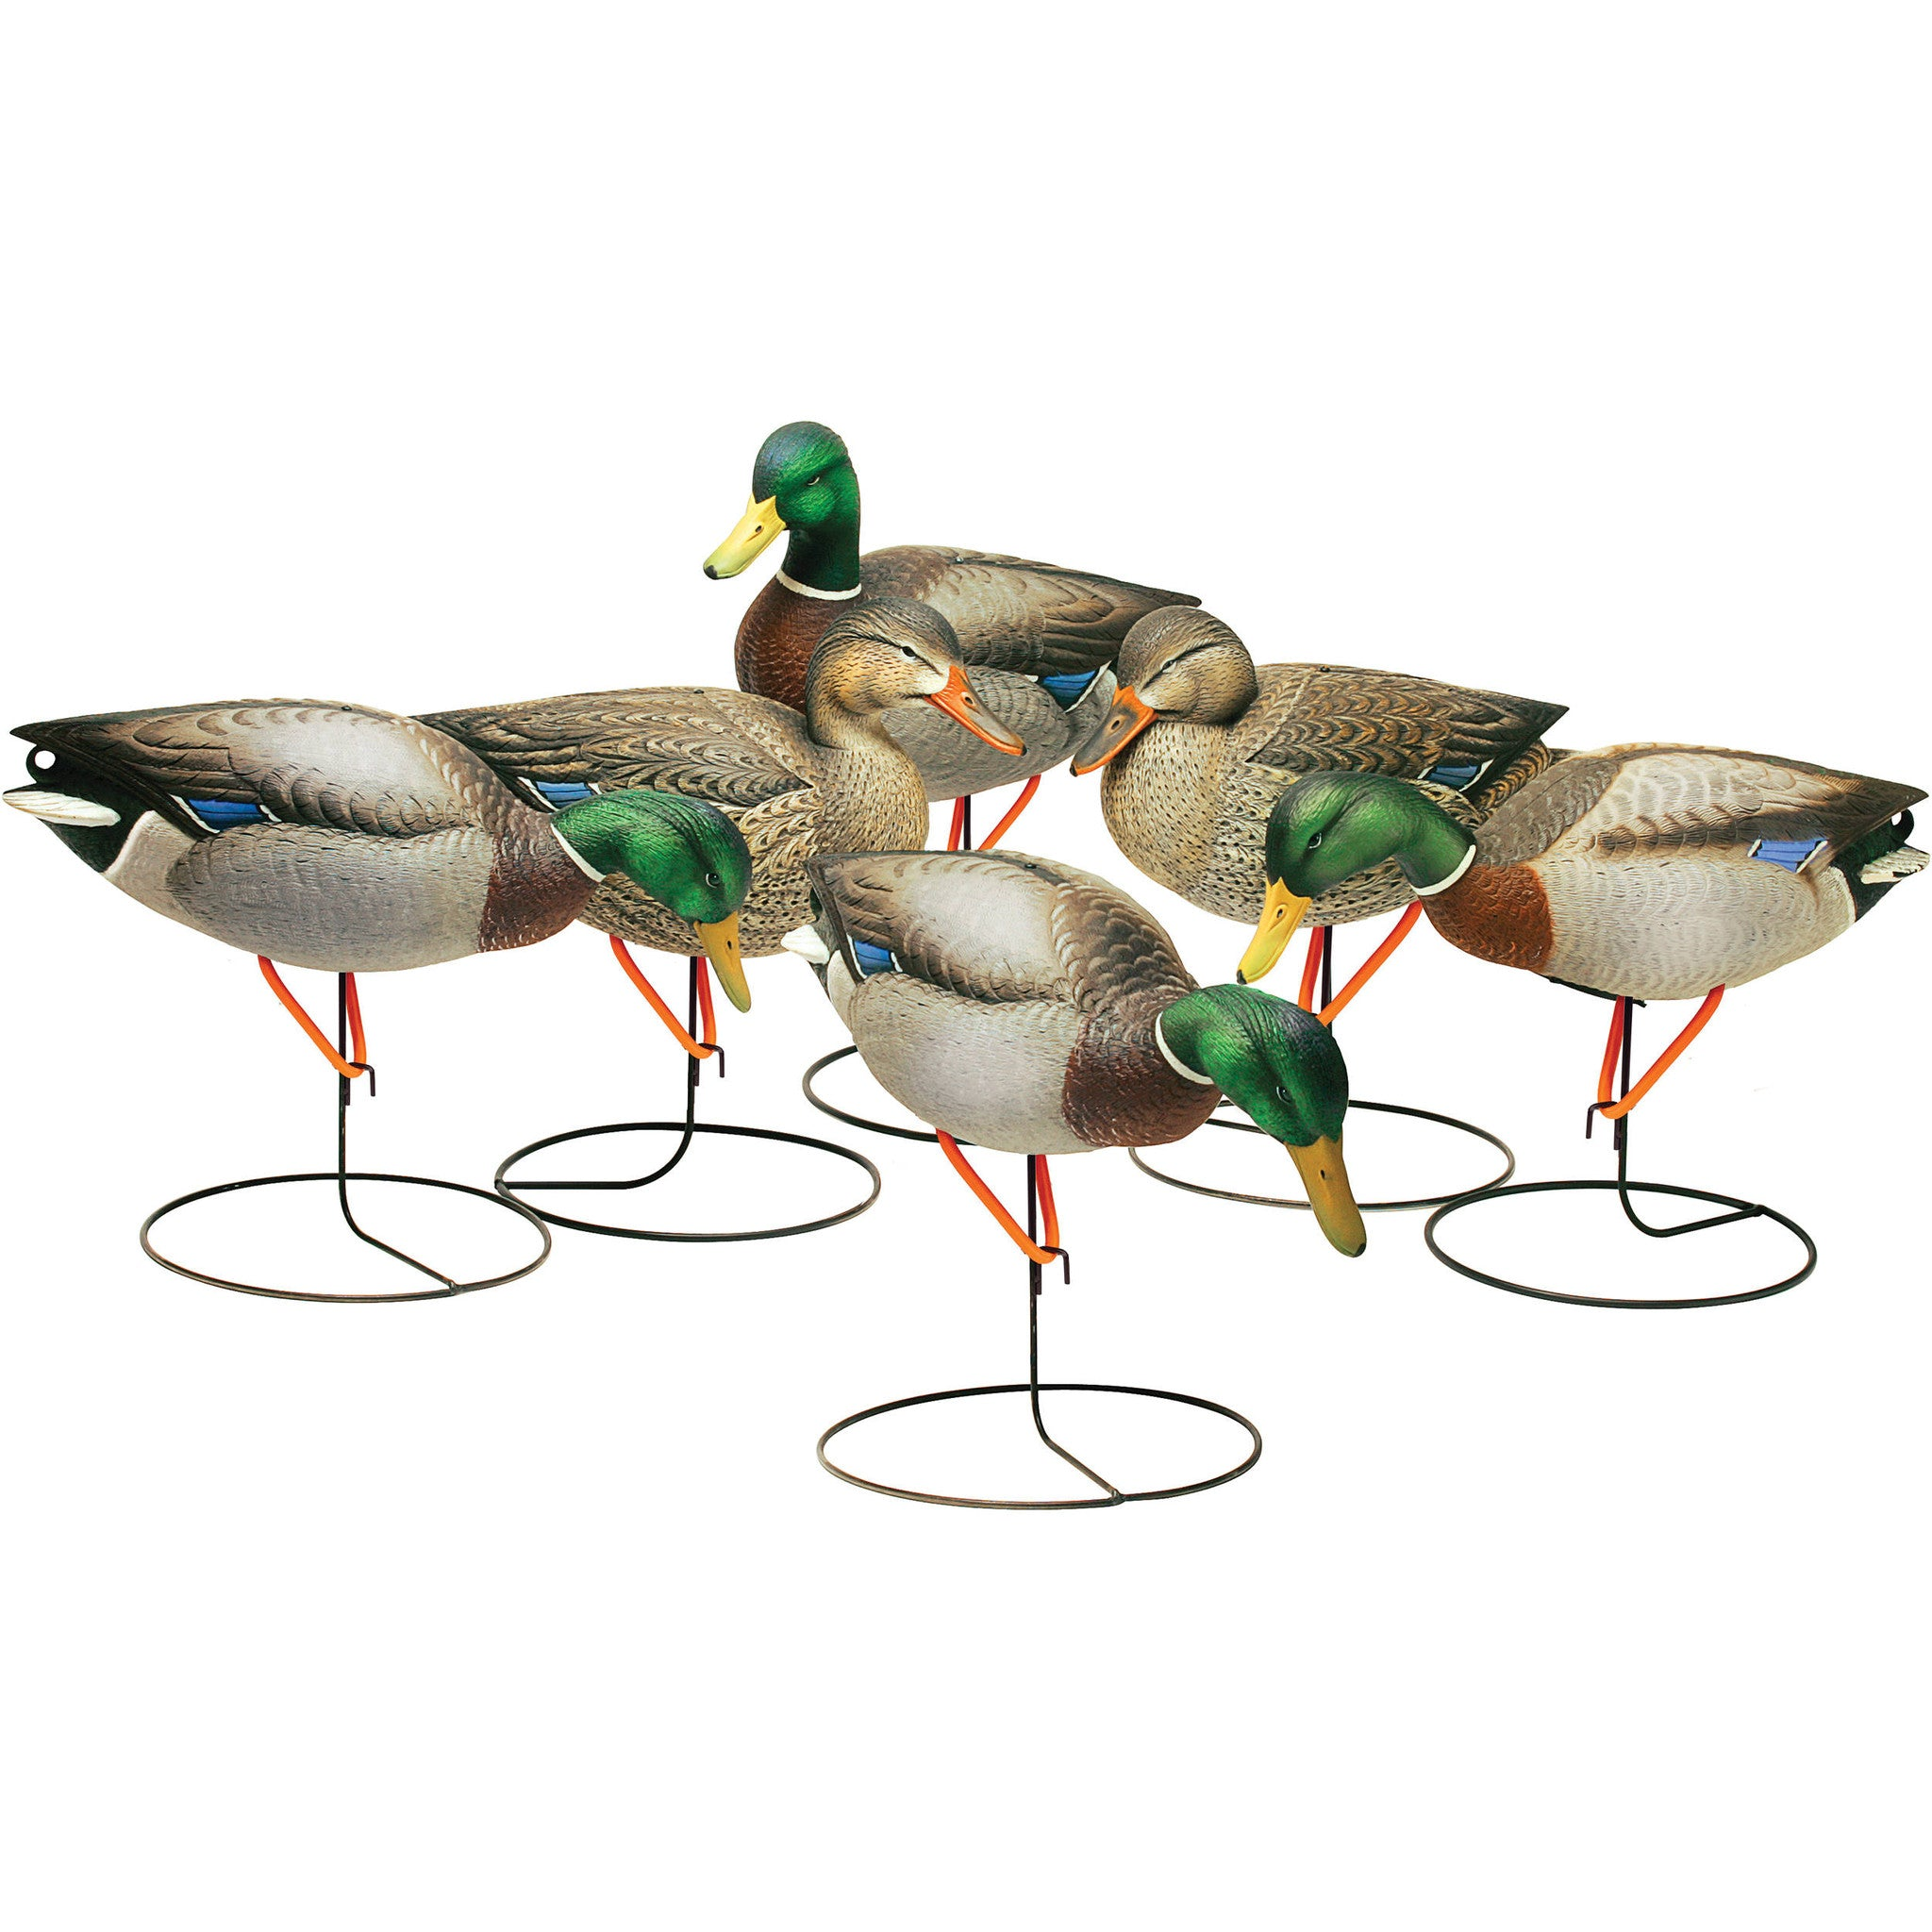 FINAL APPROACH FIELD MALLARD DECOYS 6 PACK-High Falls Outfitters